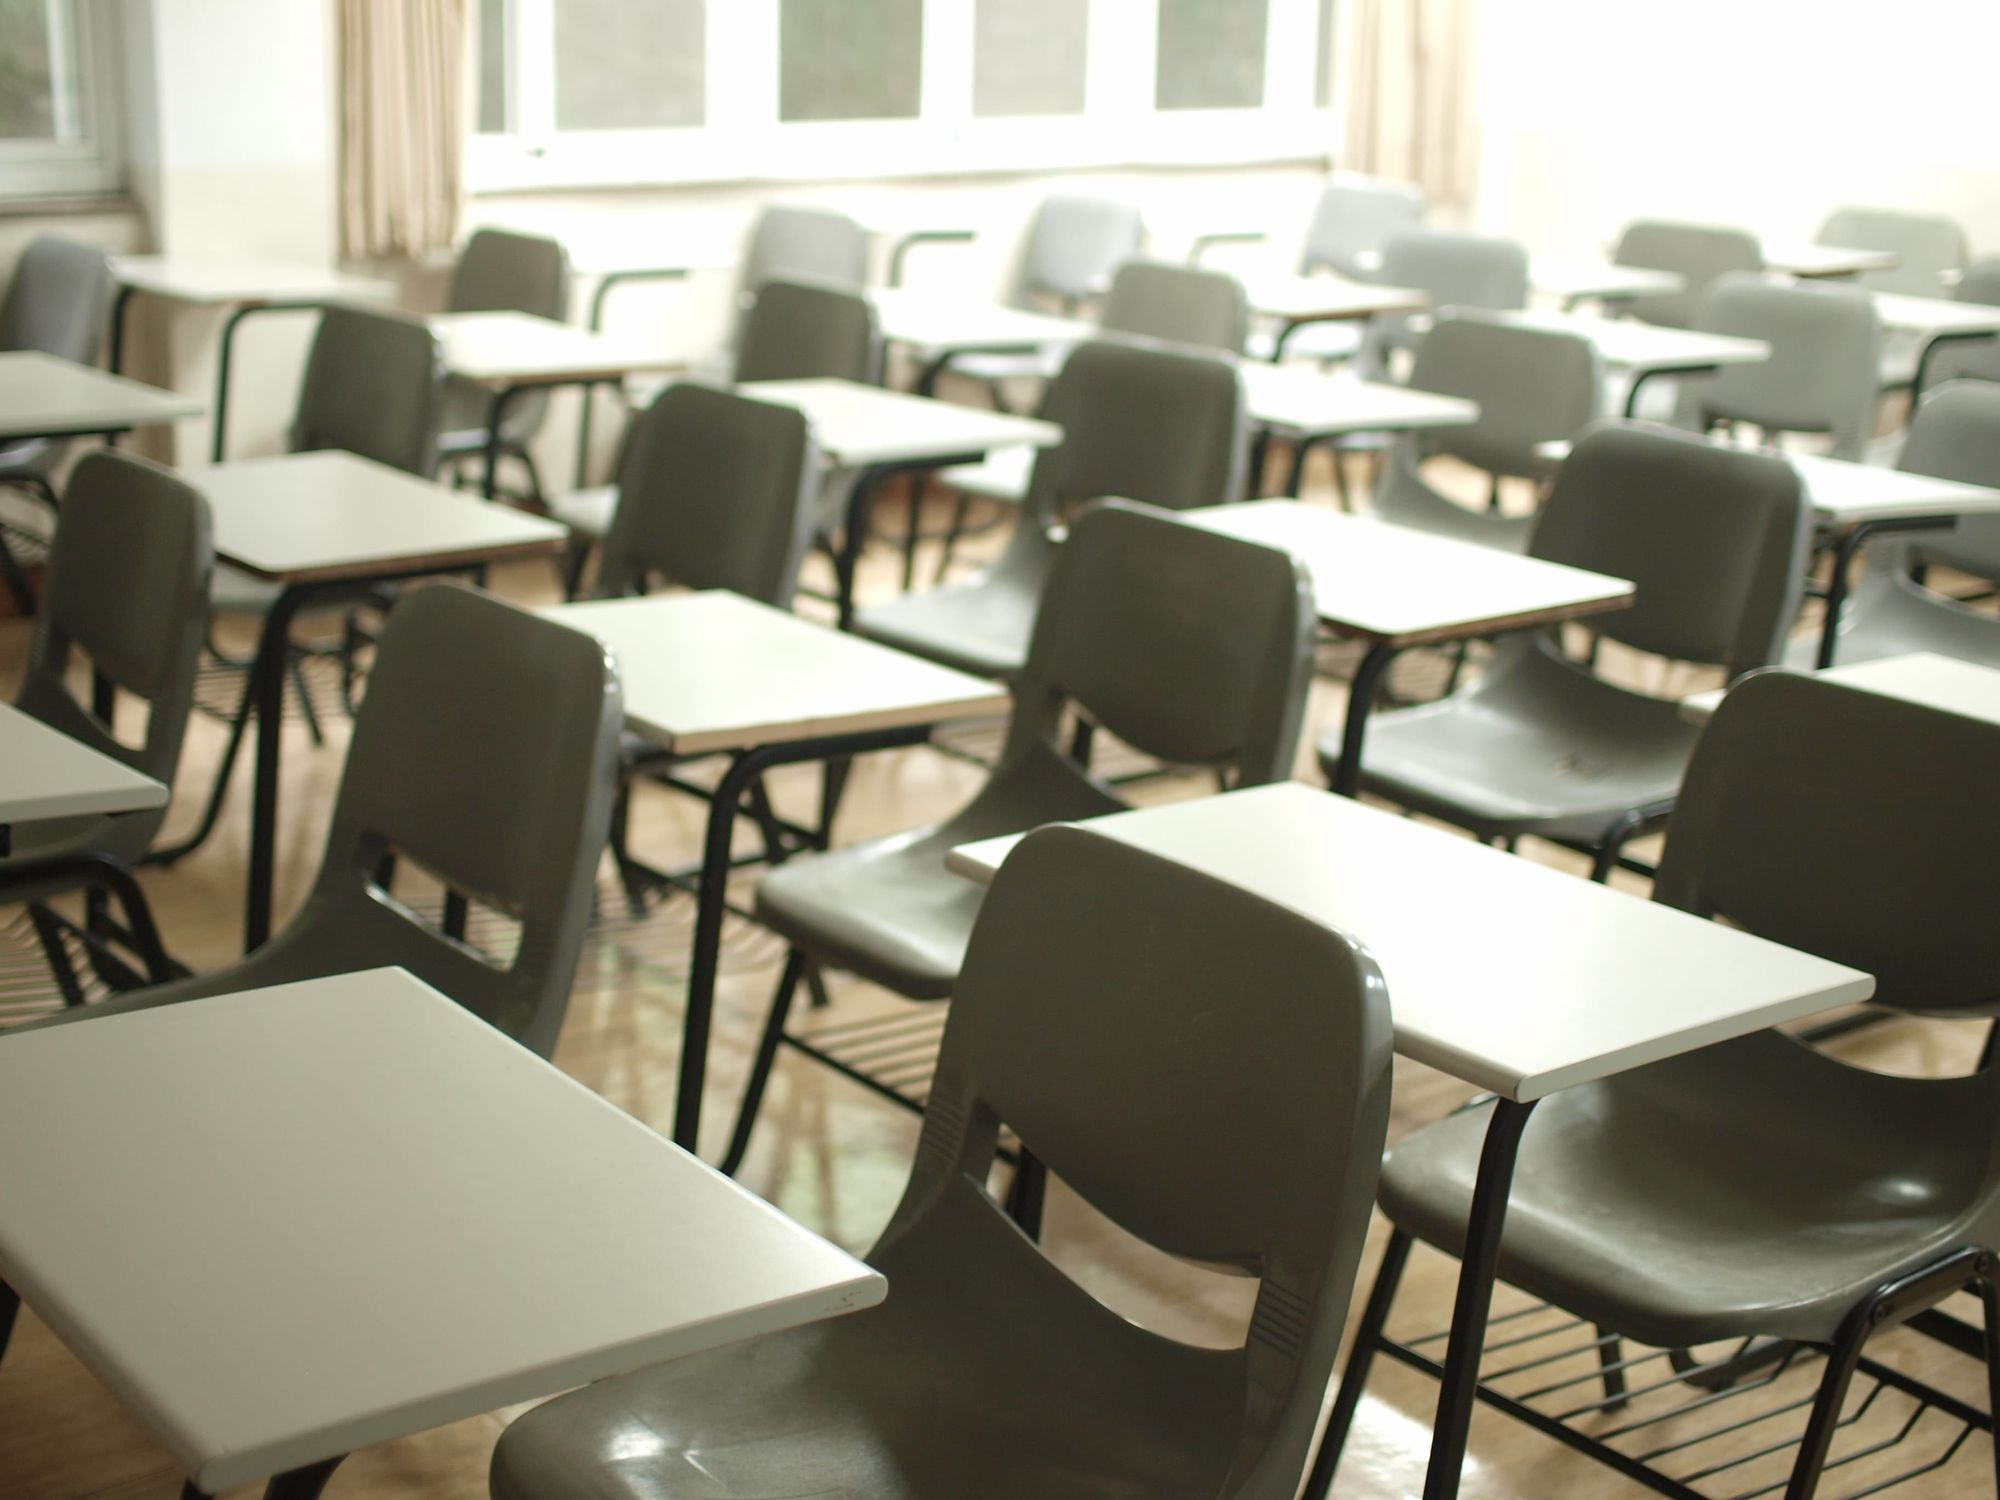 Empty tables and seats in a classroom.